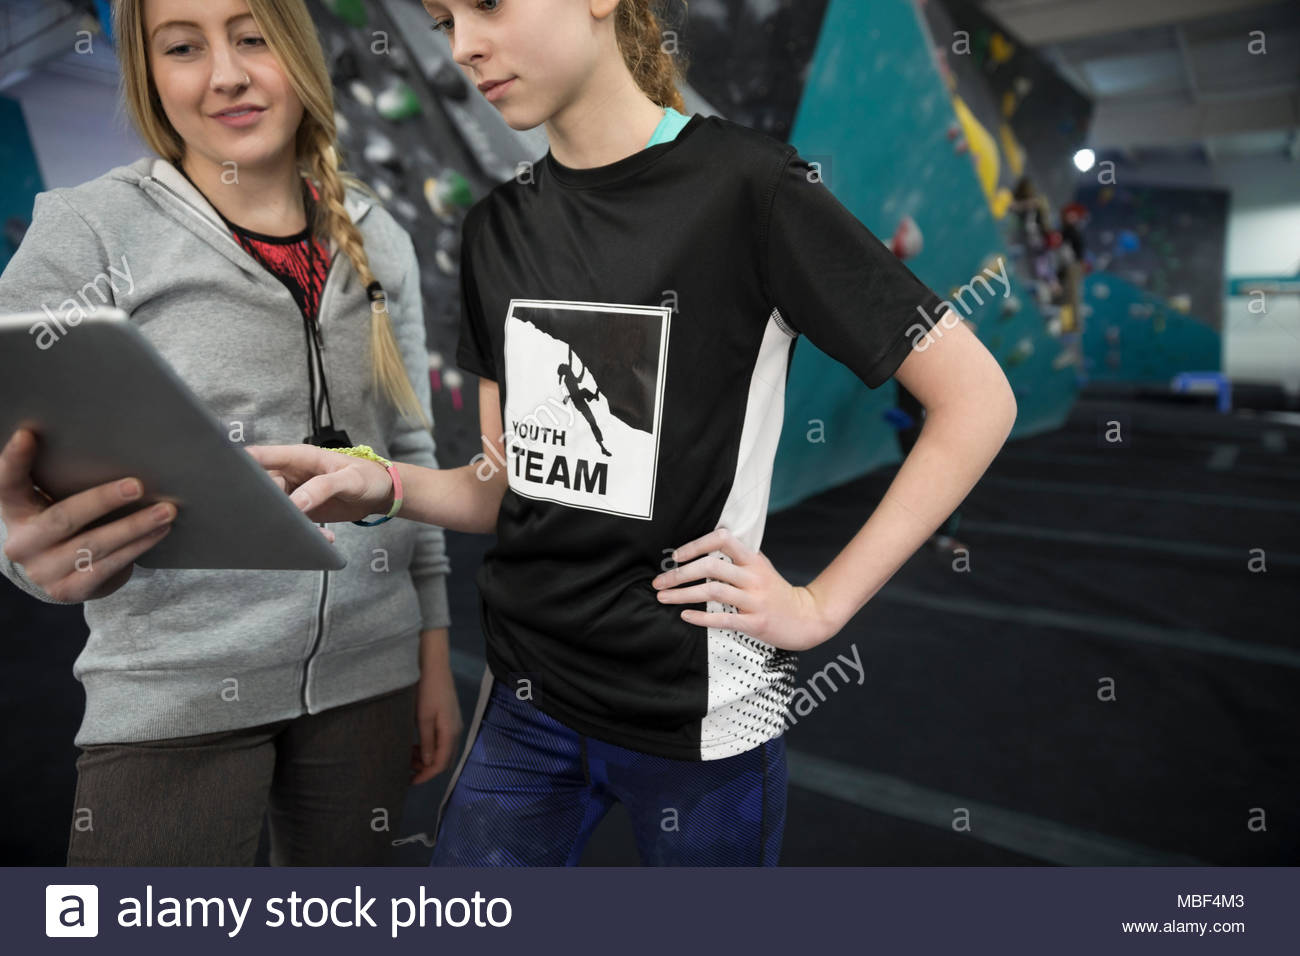 Female instructor and girl rock climbing student using digital tablet at climbing wall in climbing gym - Stock Image